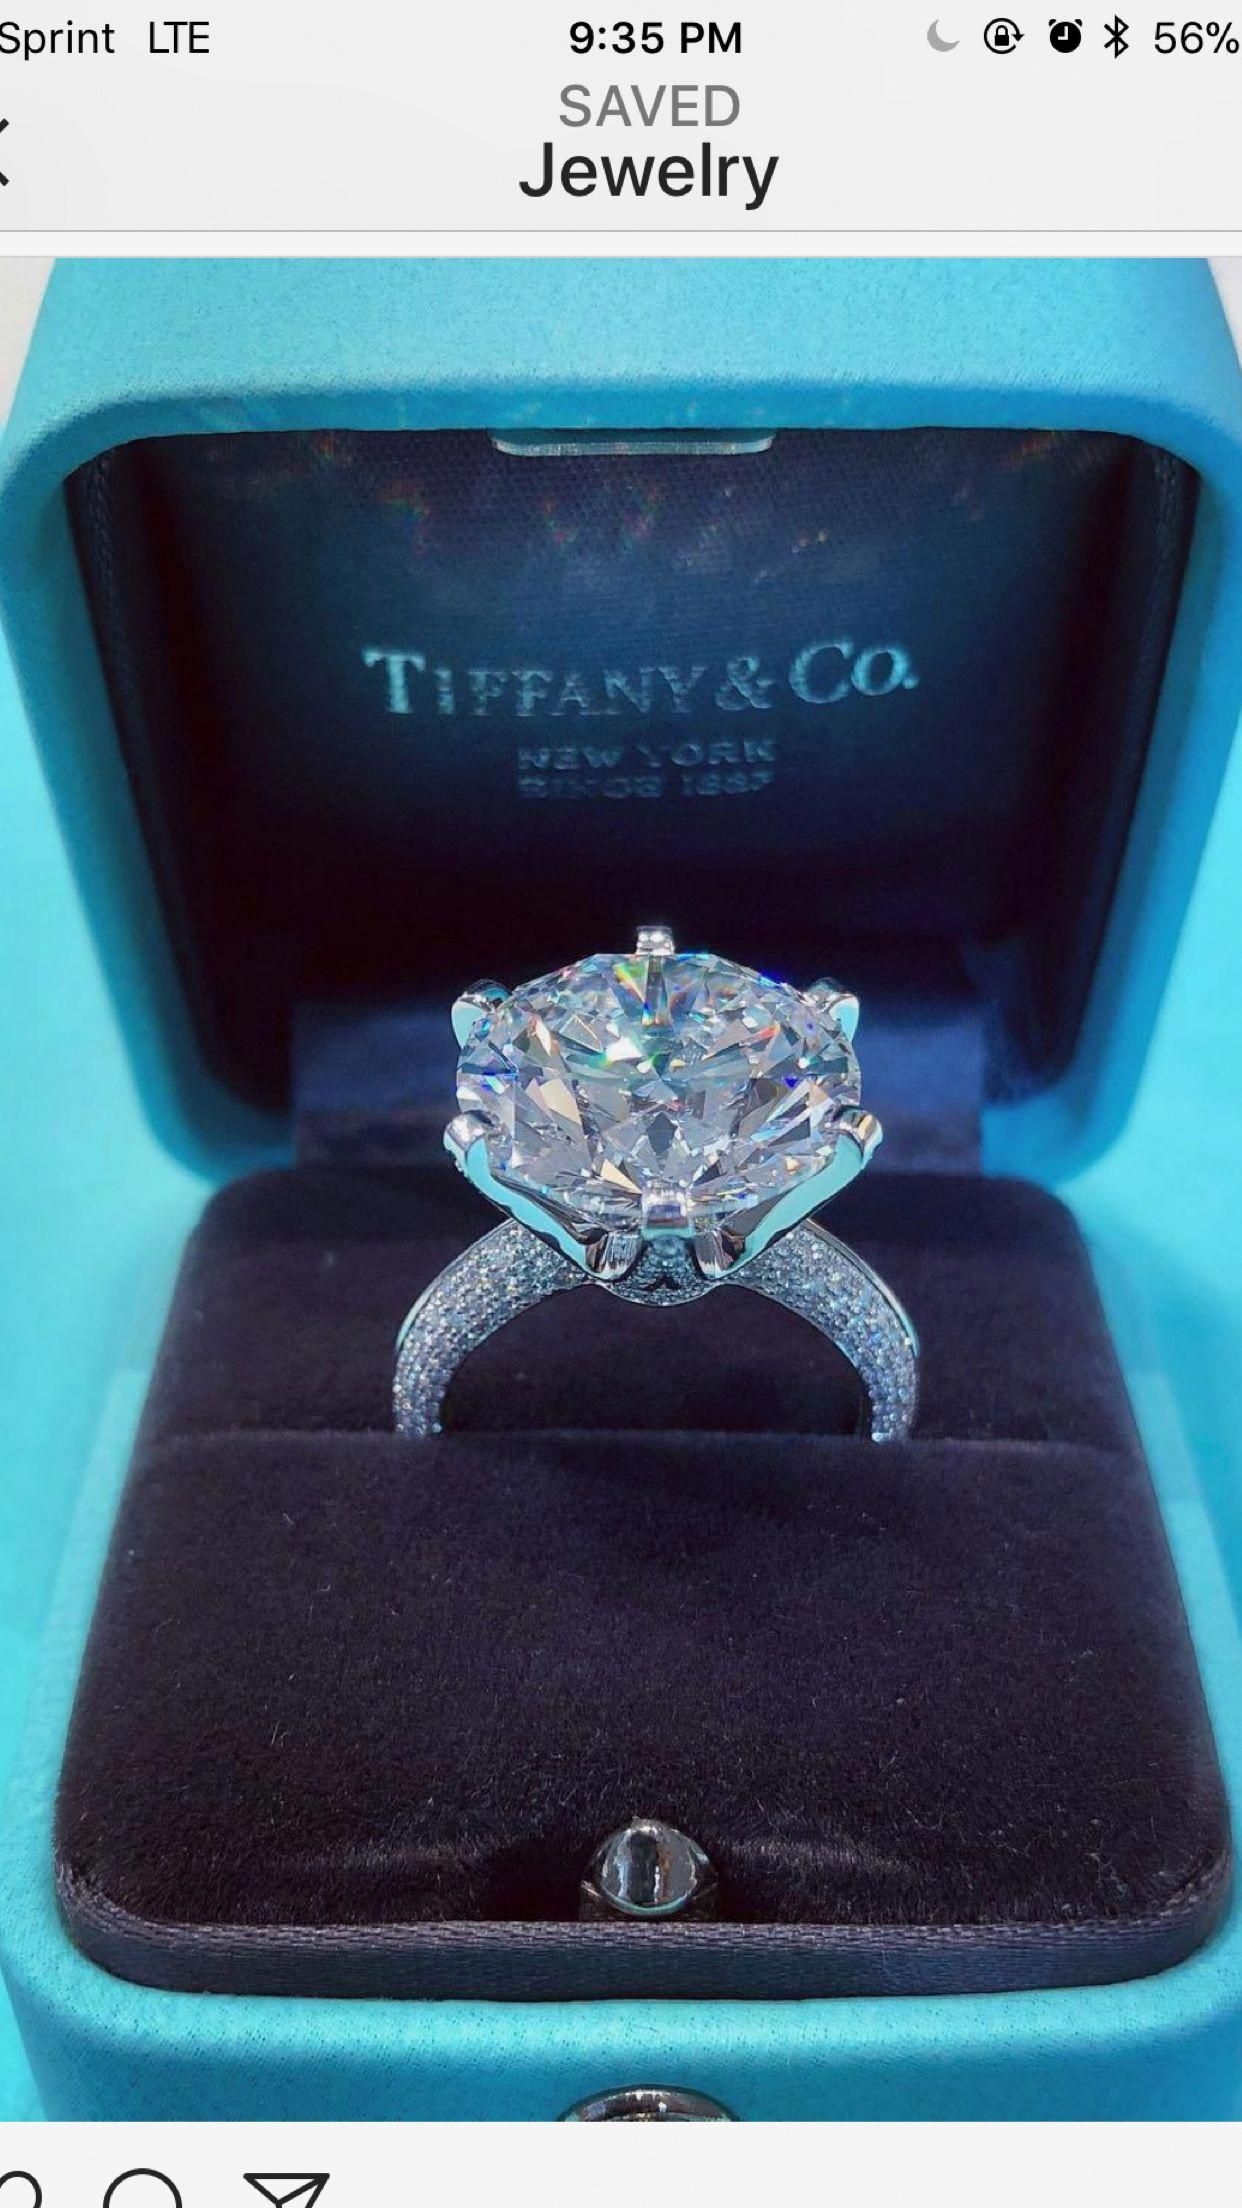 Tiffany Weddingringstiffany Round Diamond Engagement Rings Tiffany Engagement Ring Tiffany Wedding Rings